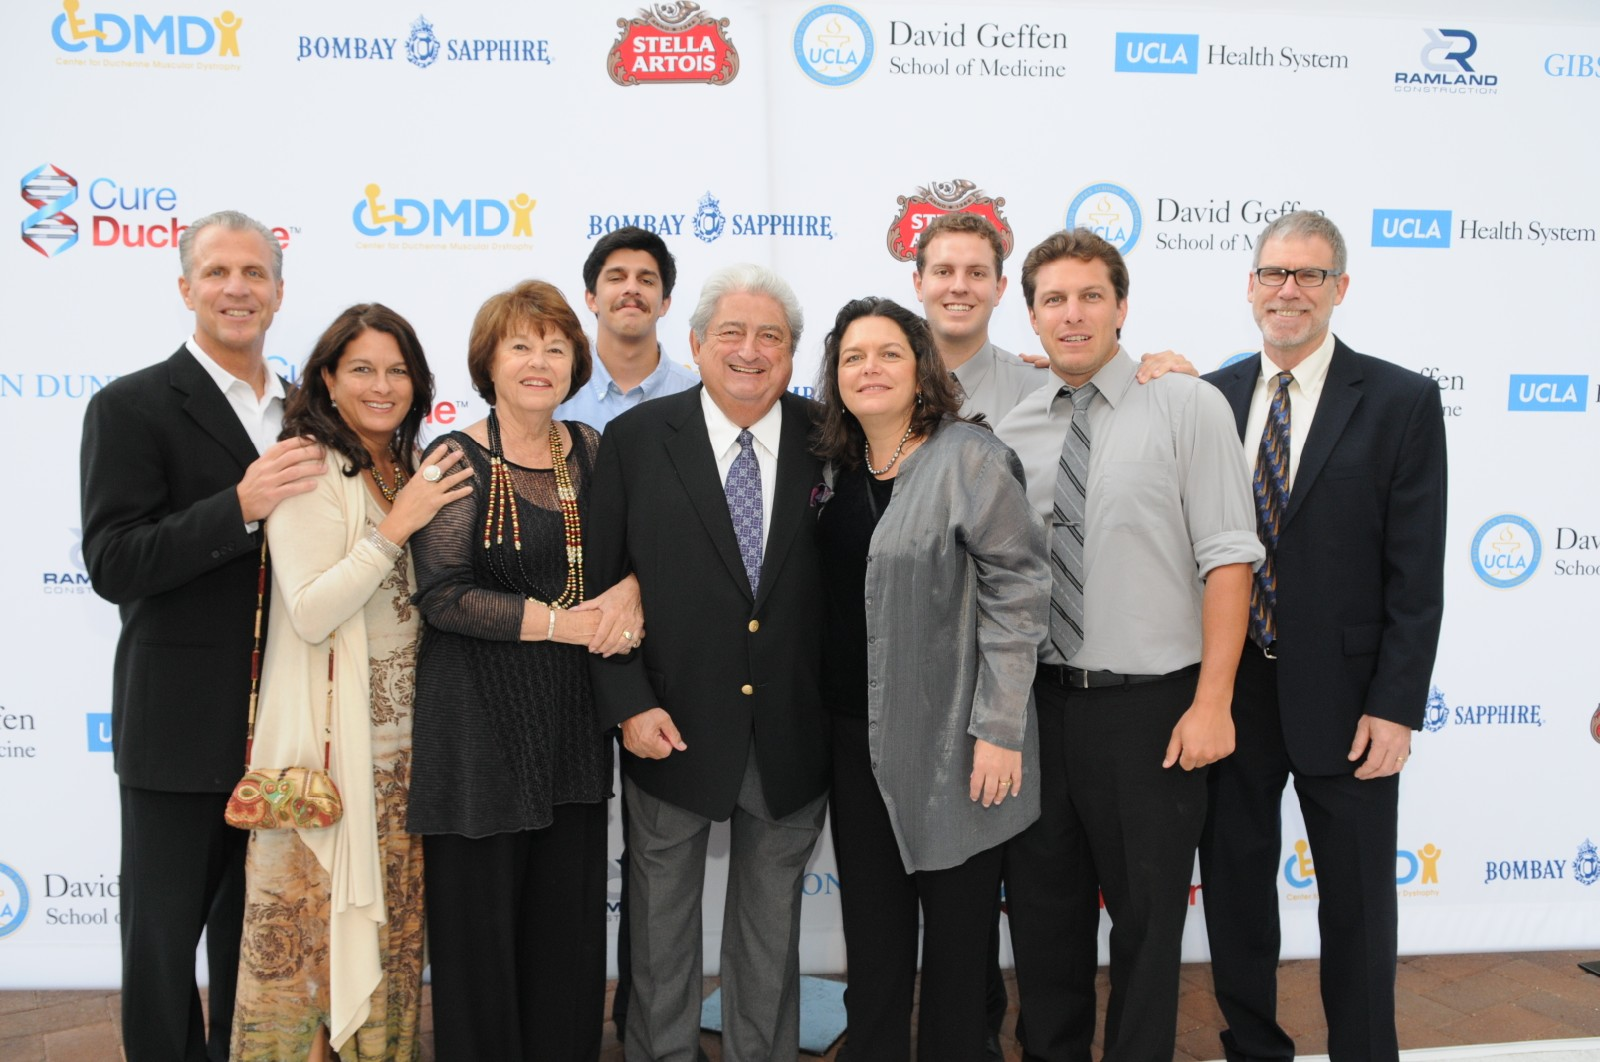 CDMD's Dr. Miceli surrounded by family